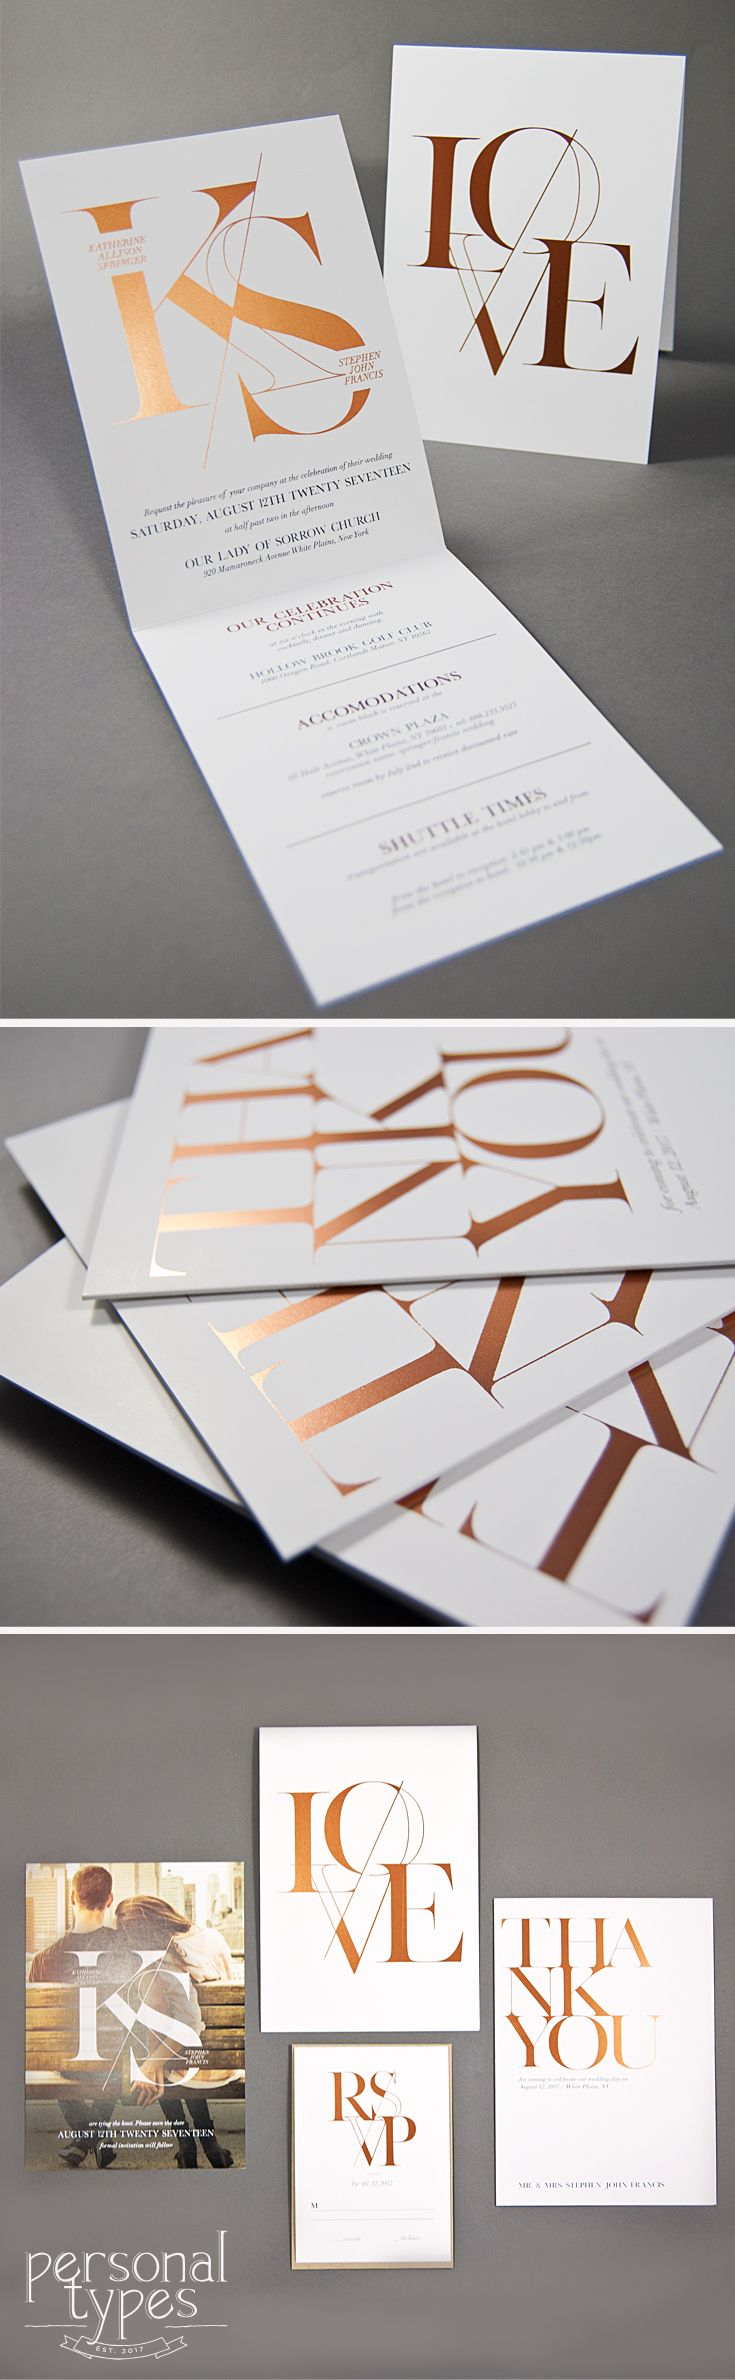 Modern Simple Editorial Type Rose Gold Foil Wedding Invitation #weddings